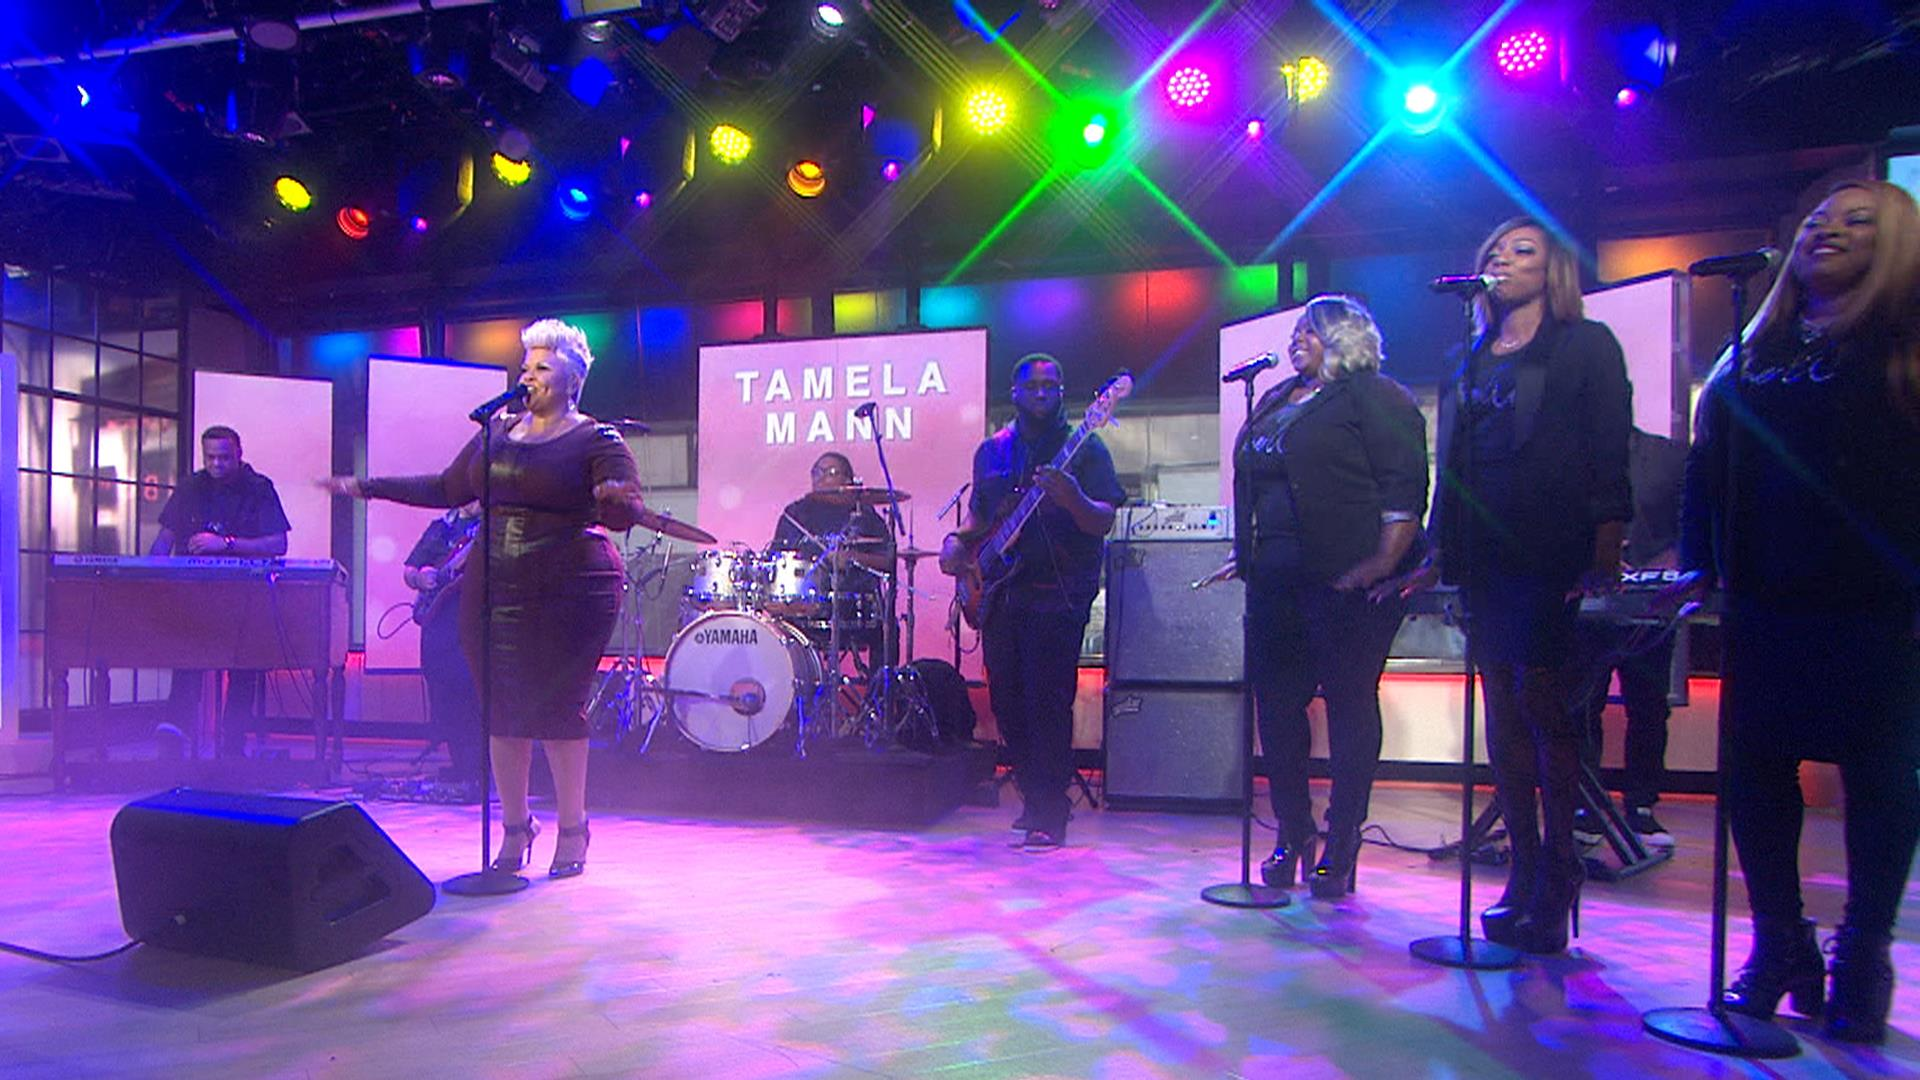 tamela mann concert dates 2016 Family tour april 22 tamela mann & david mann join forces for 'mann's world family tour' april 22 at the crown theatre hockey schedule released the fayetteville fireantz, members of the sphl, released their full 2016-2017 schedule today, highlighted by a 28 home game stand.